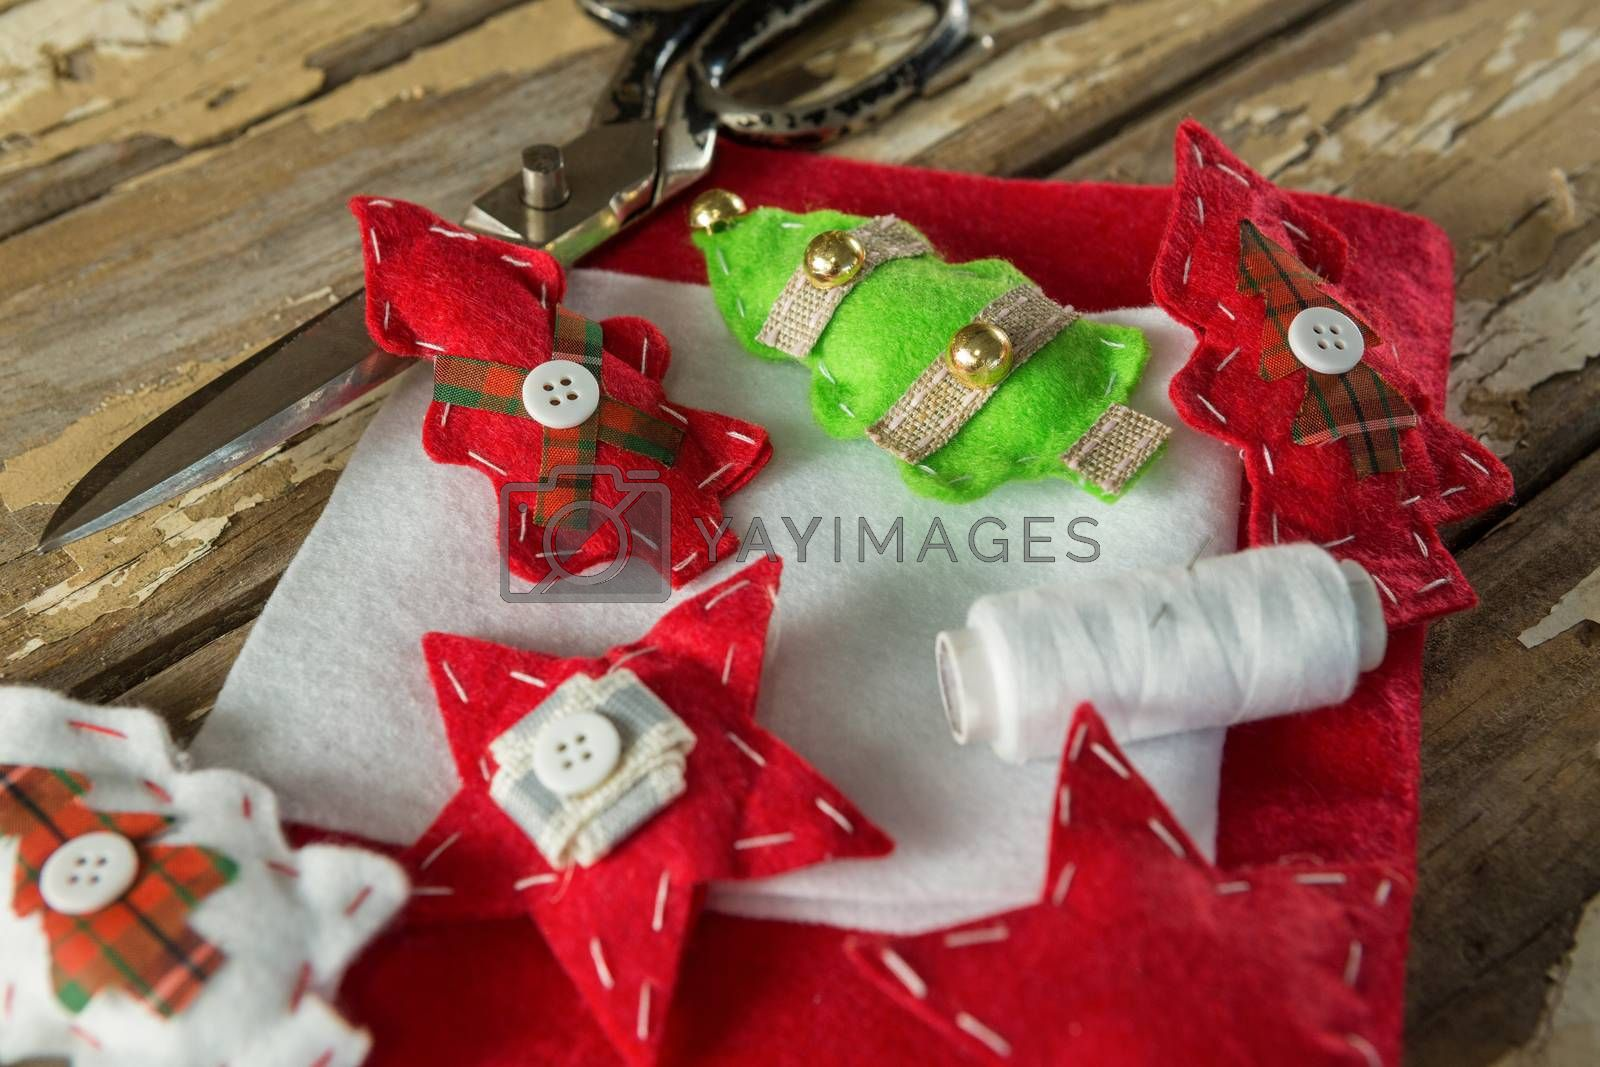 Handmade christmas trees and craft material on wooden plank by Wavebreakmedia